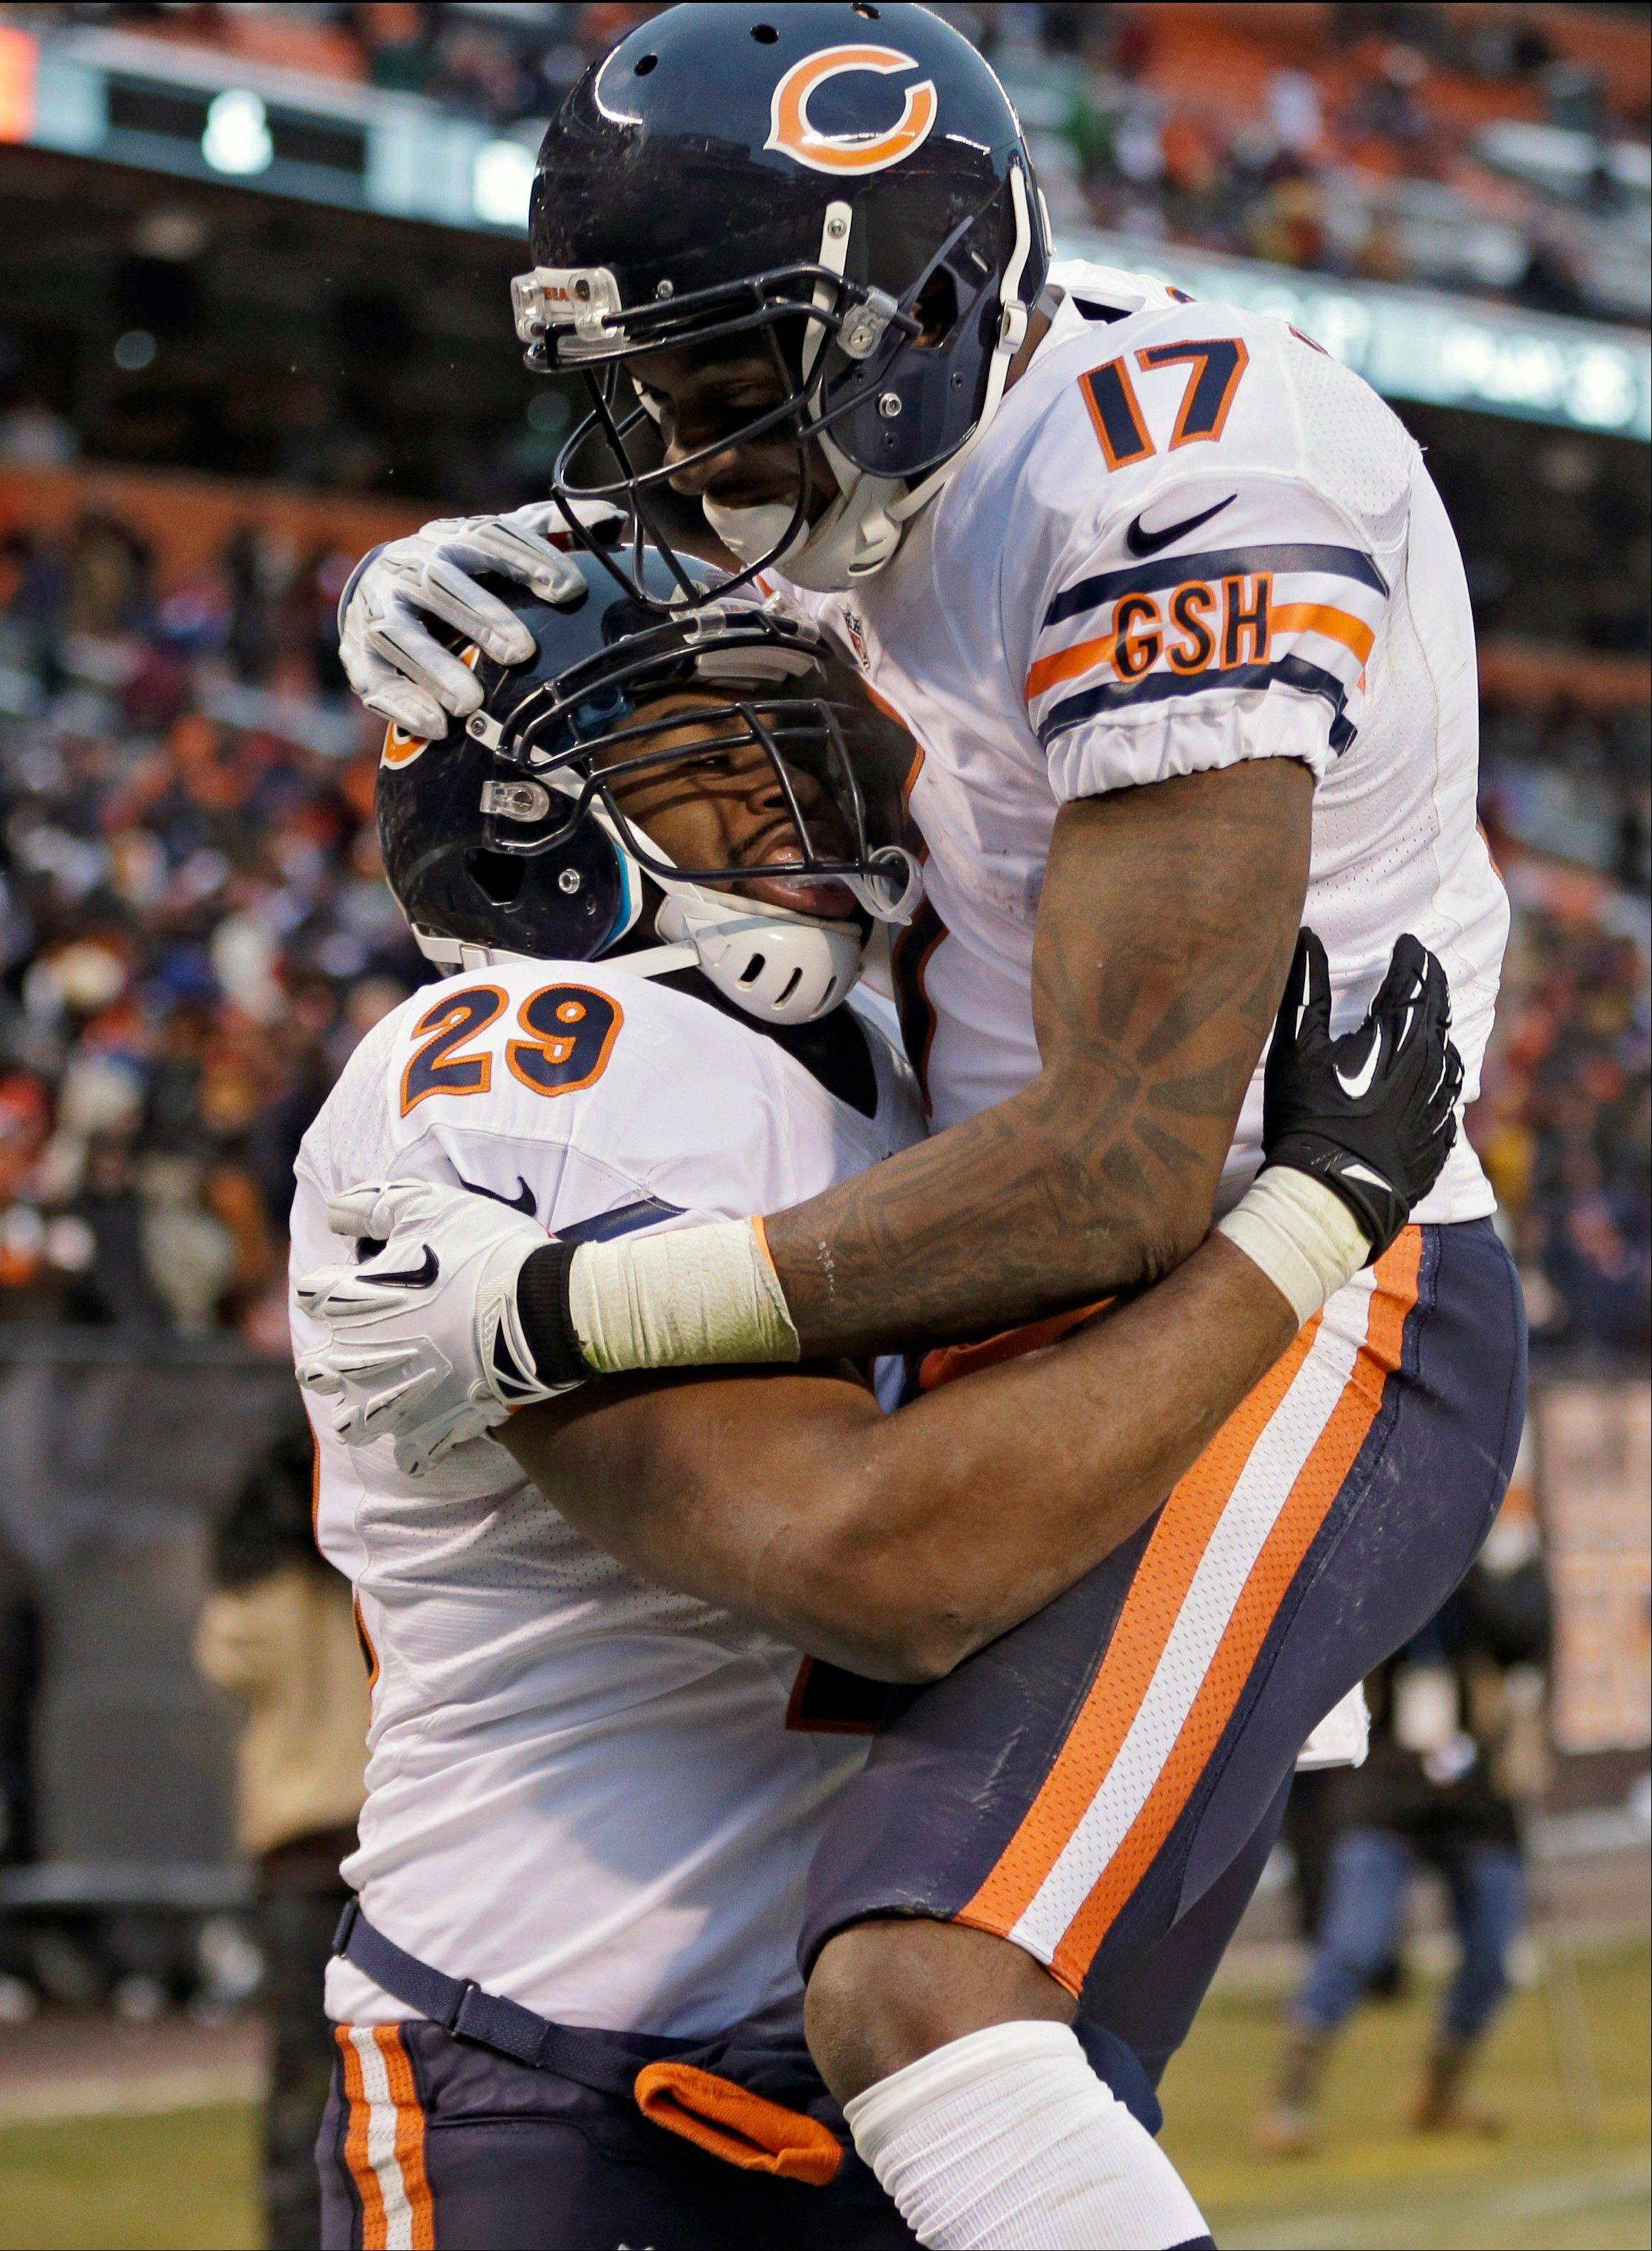 Chicago Bears running back Michael Bush (29) celebrates with wide receiver Alshon Jeffery (17) after Bush ran 40 yards for a touchdown against the Cleveland Browns in the fourth quarter of an NFL football game Sunday, Dec. 15, 2013, in Cleveland. The Bears won 38-31.